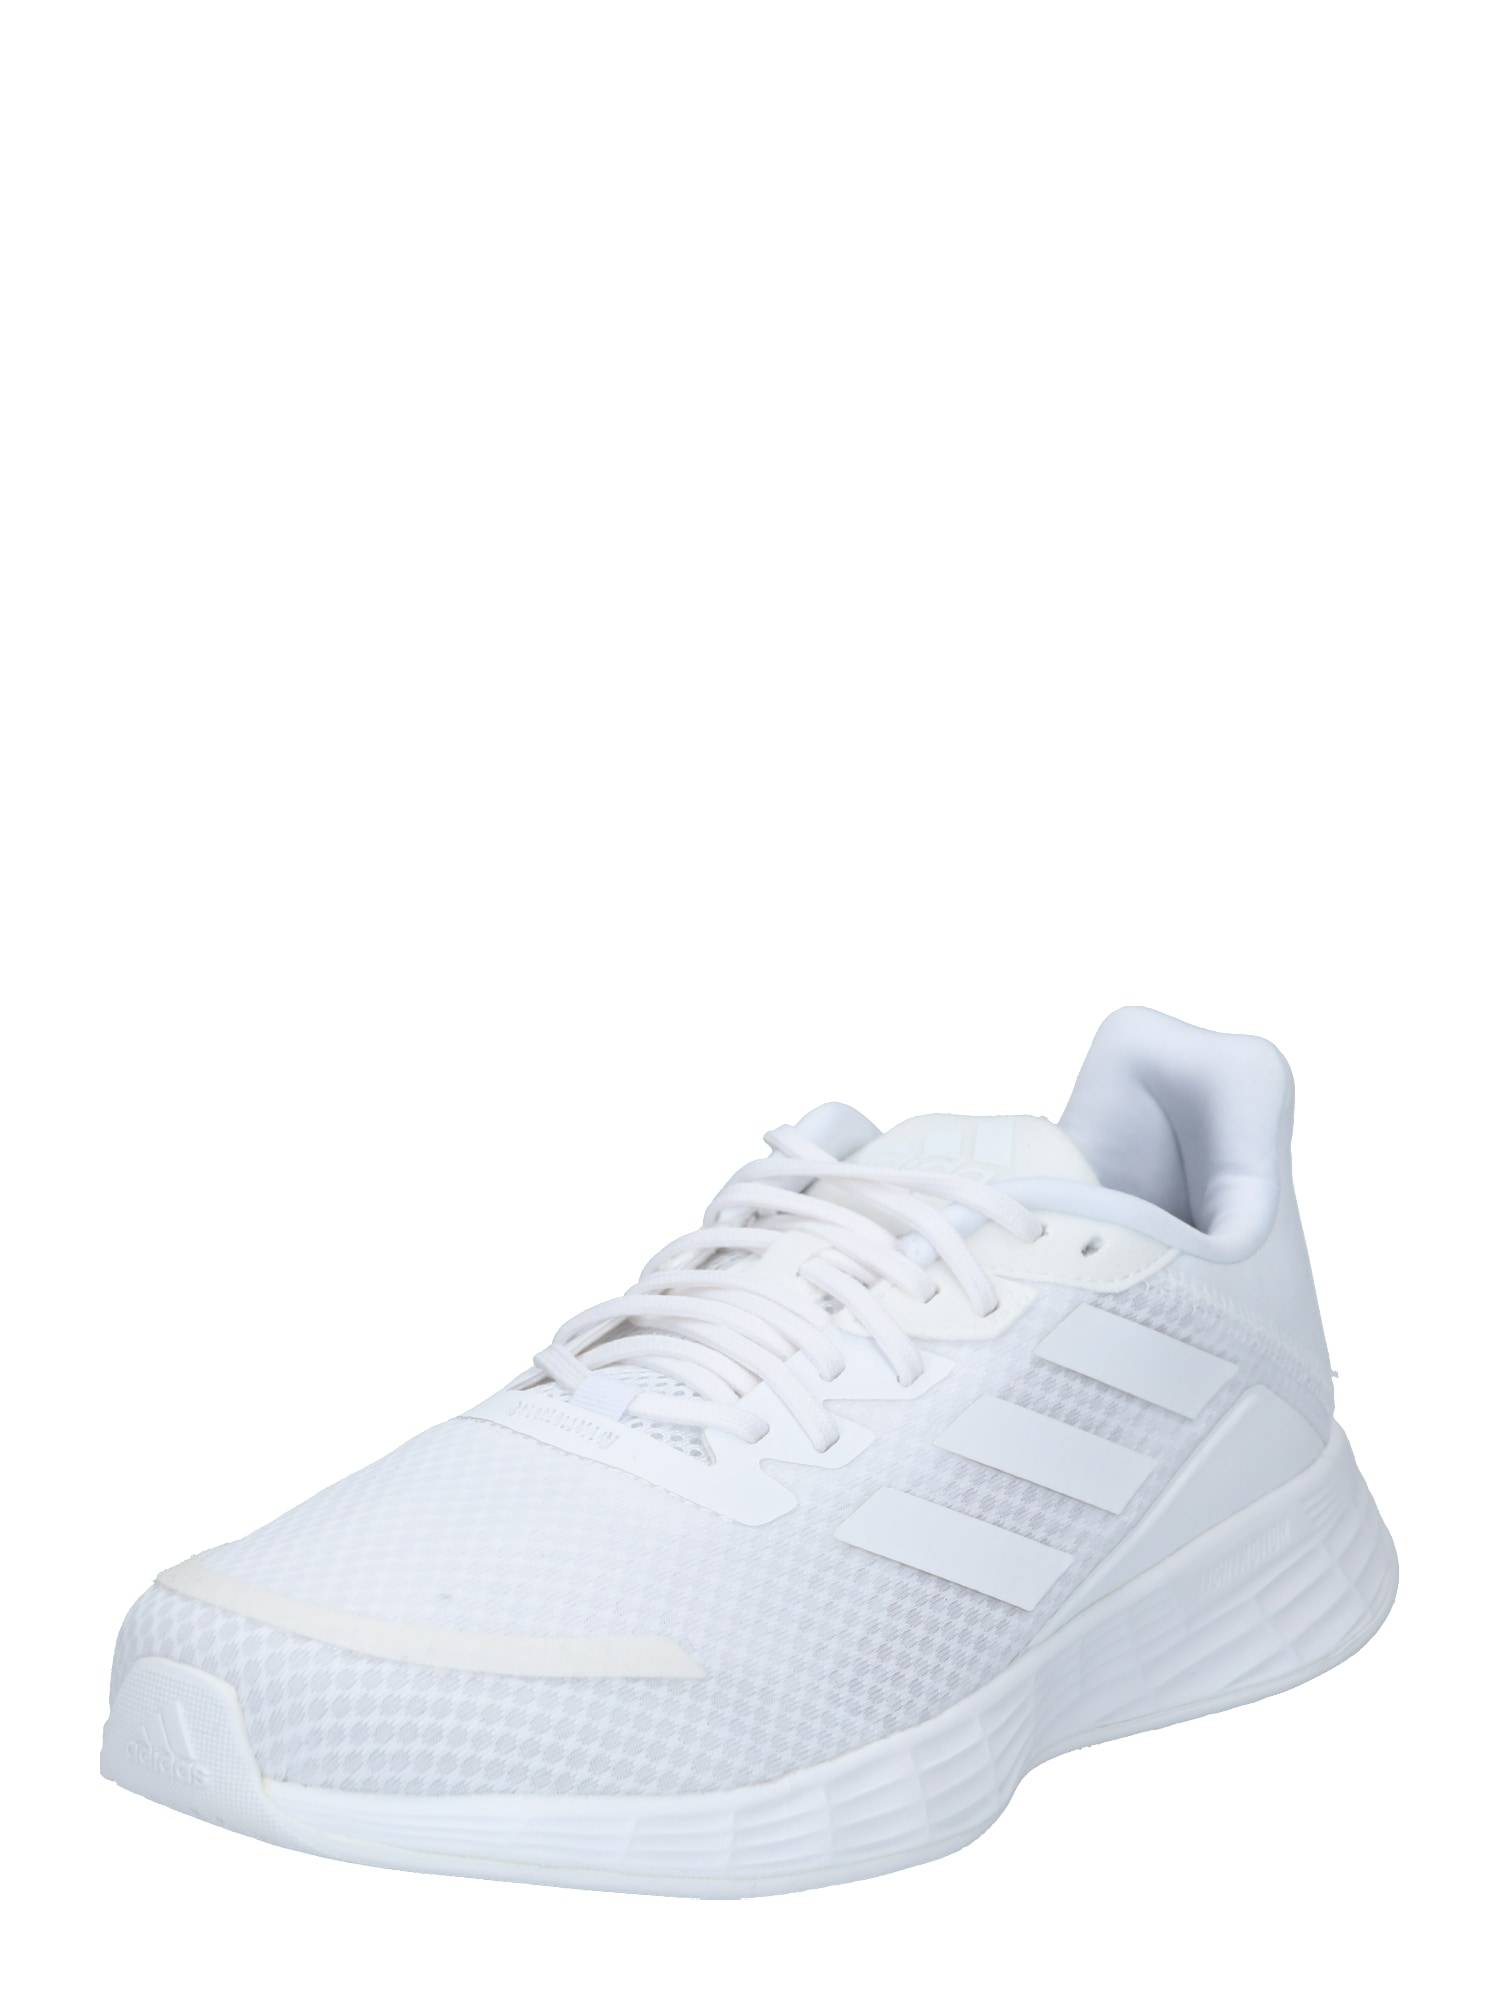 ADIDAS PERFORMANCE Chaussure de course  - Blanc - Taille: 7.5 - male